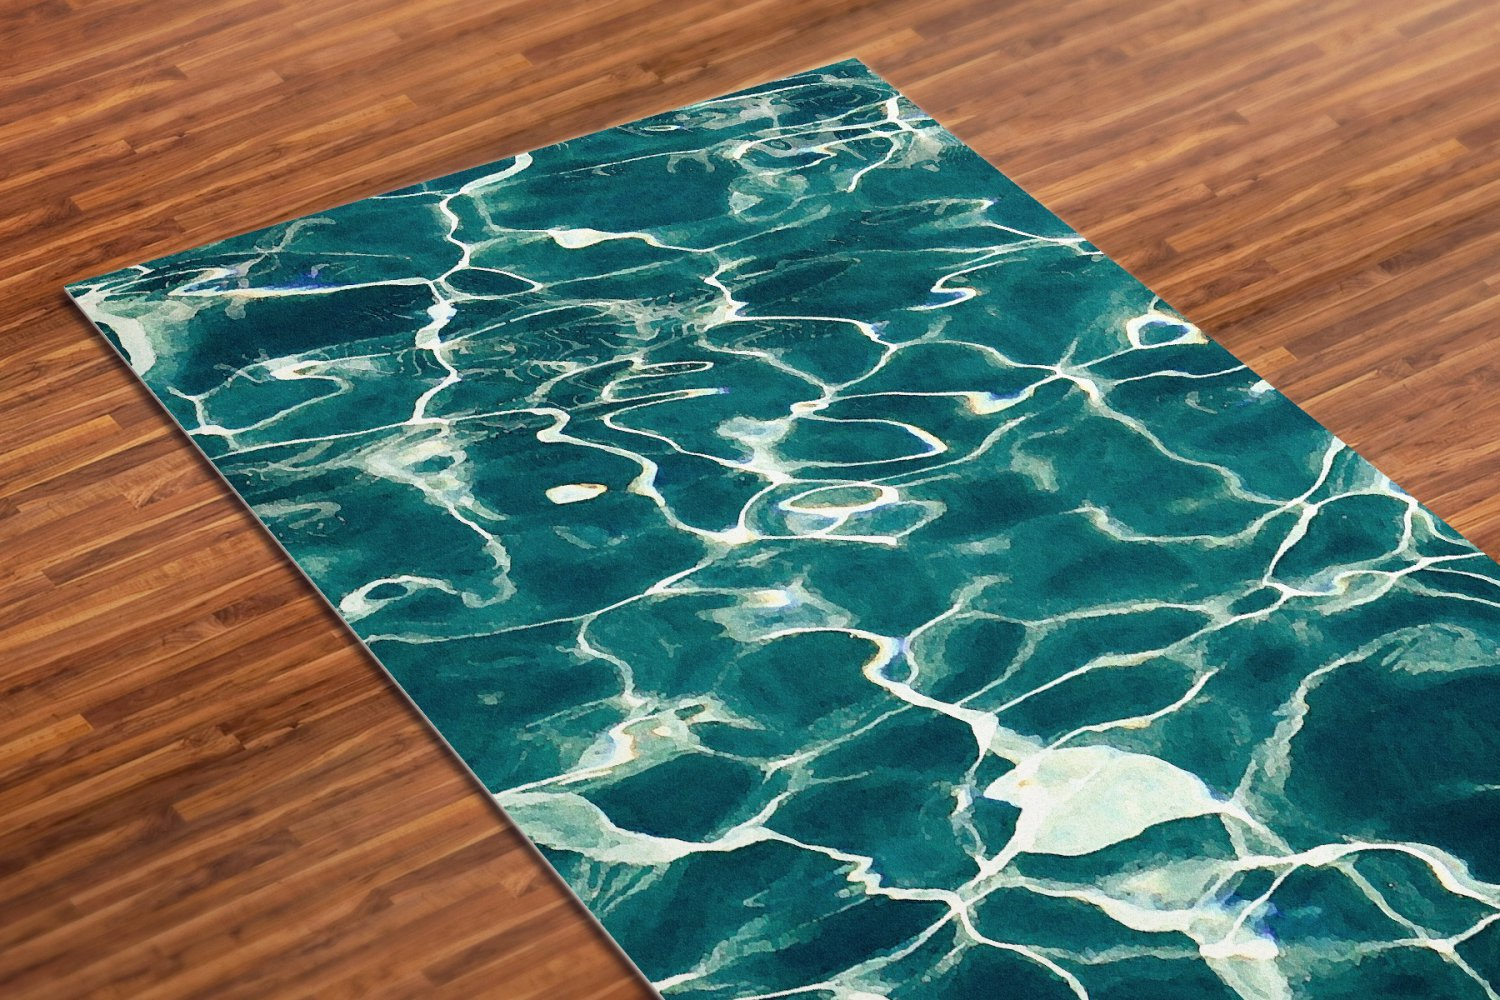 Water life Printed Yoga Mat Thick 5 mm 24 x 72 Pilates Blue Decor Rug Fitness Exercise Meditation